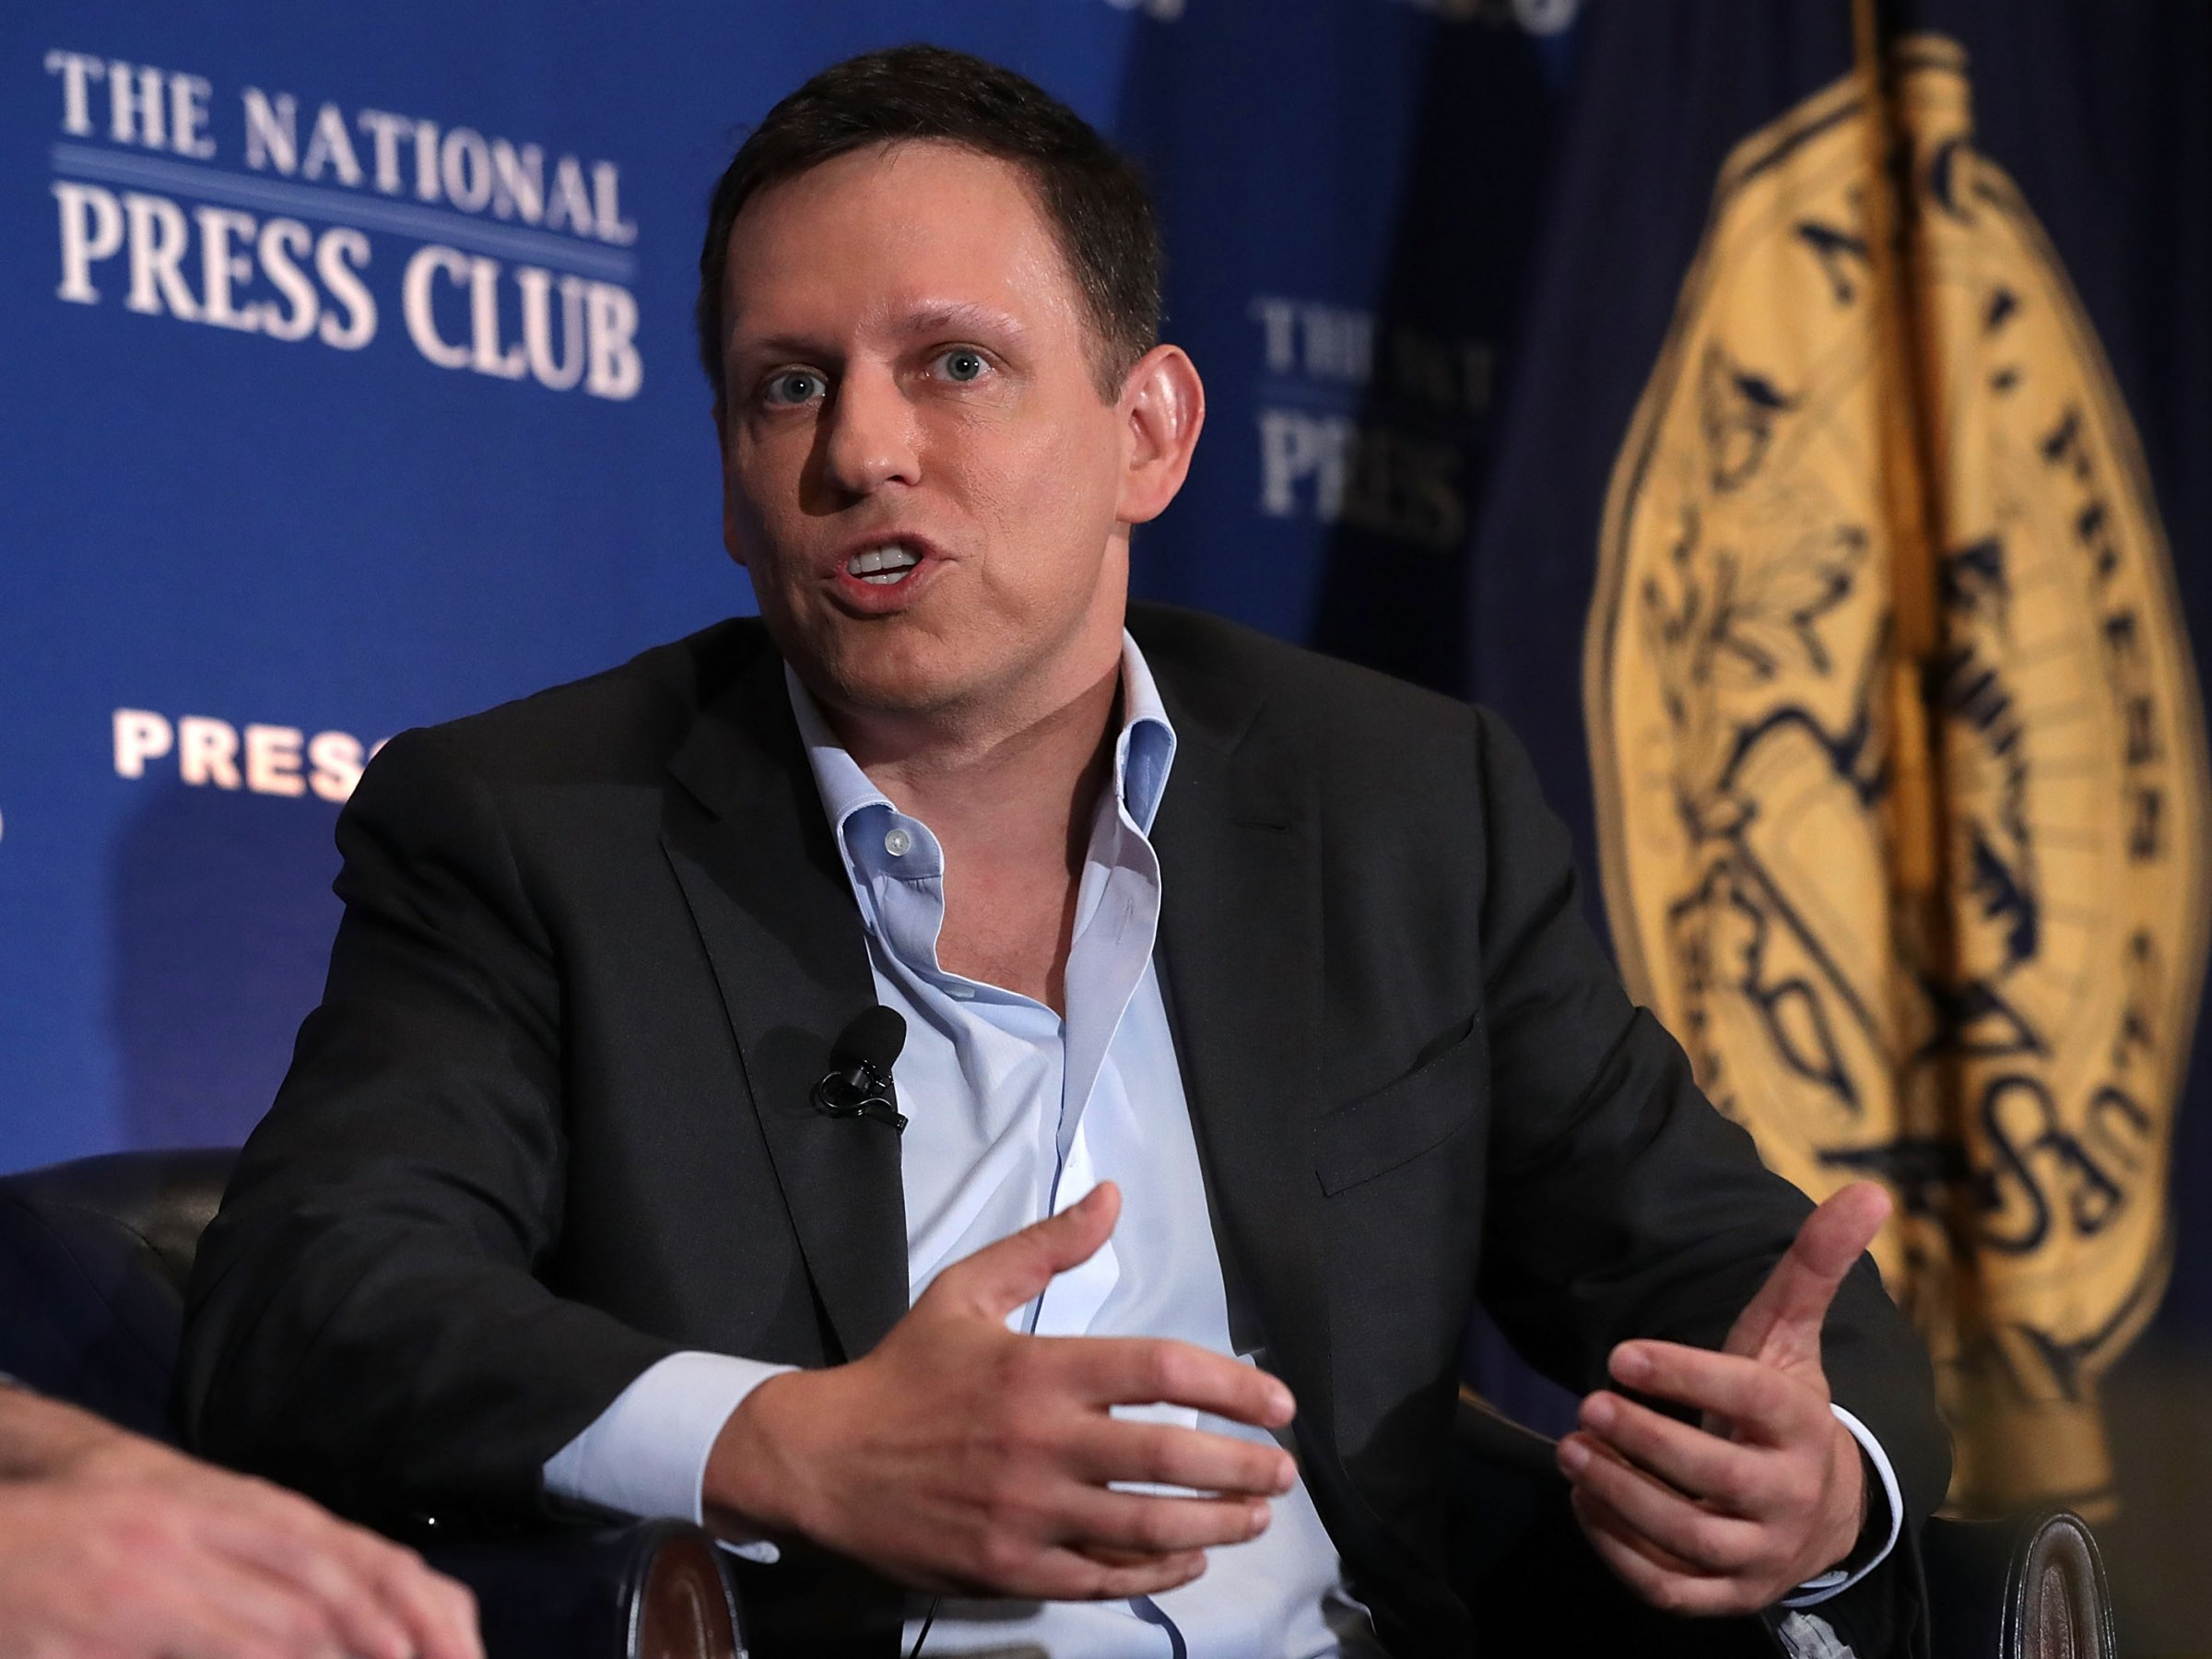 Tech mogul Peter Thiel, who bankrolled the case against Gawker even though he wasn't personally involved.